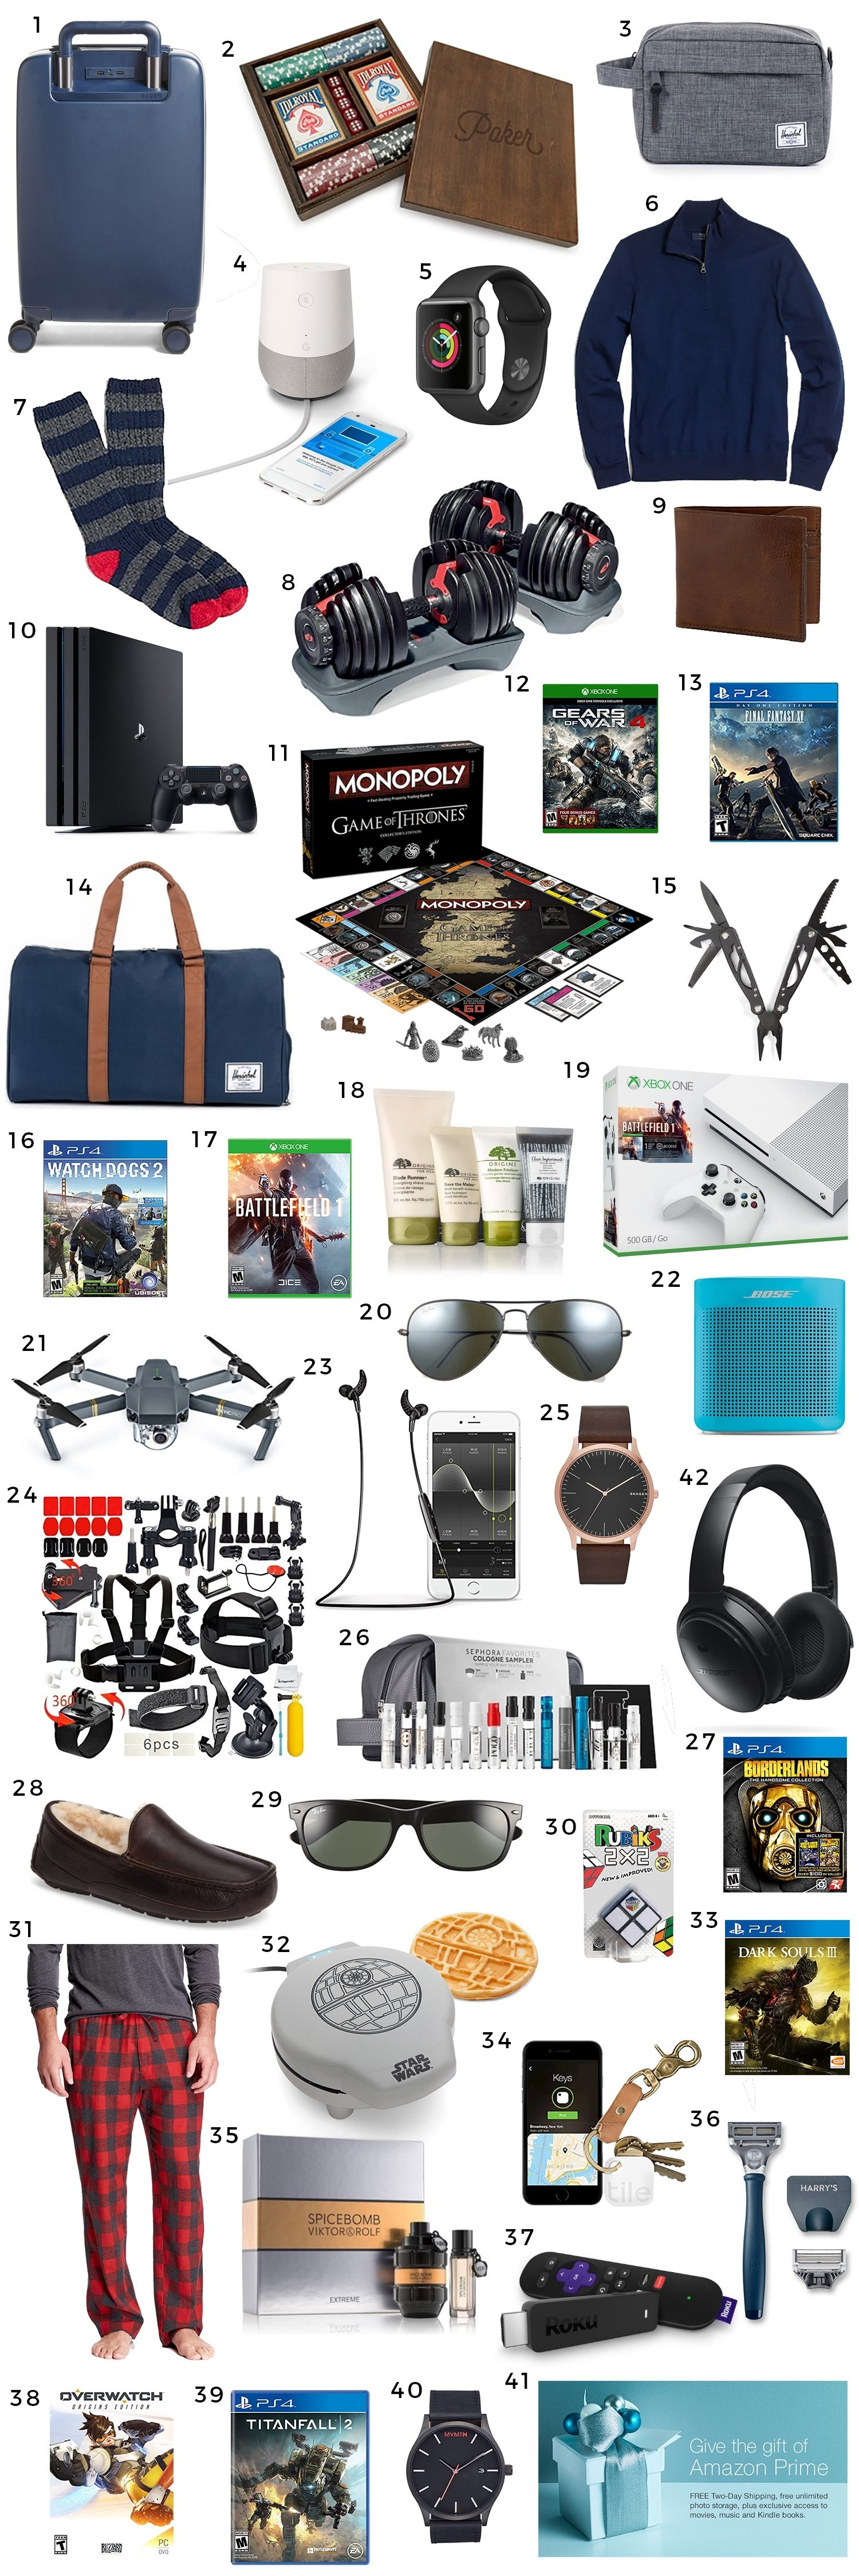 best Good Gift Ideas For Husband Christmas image collection